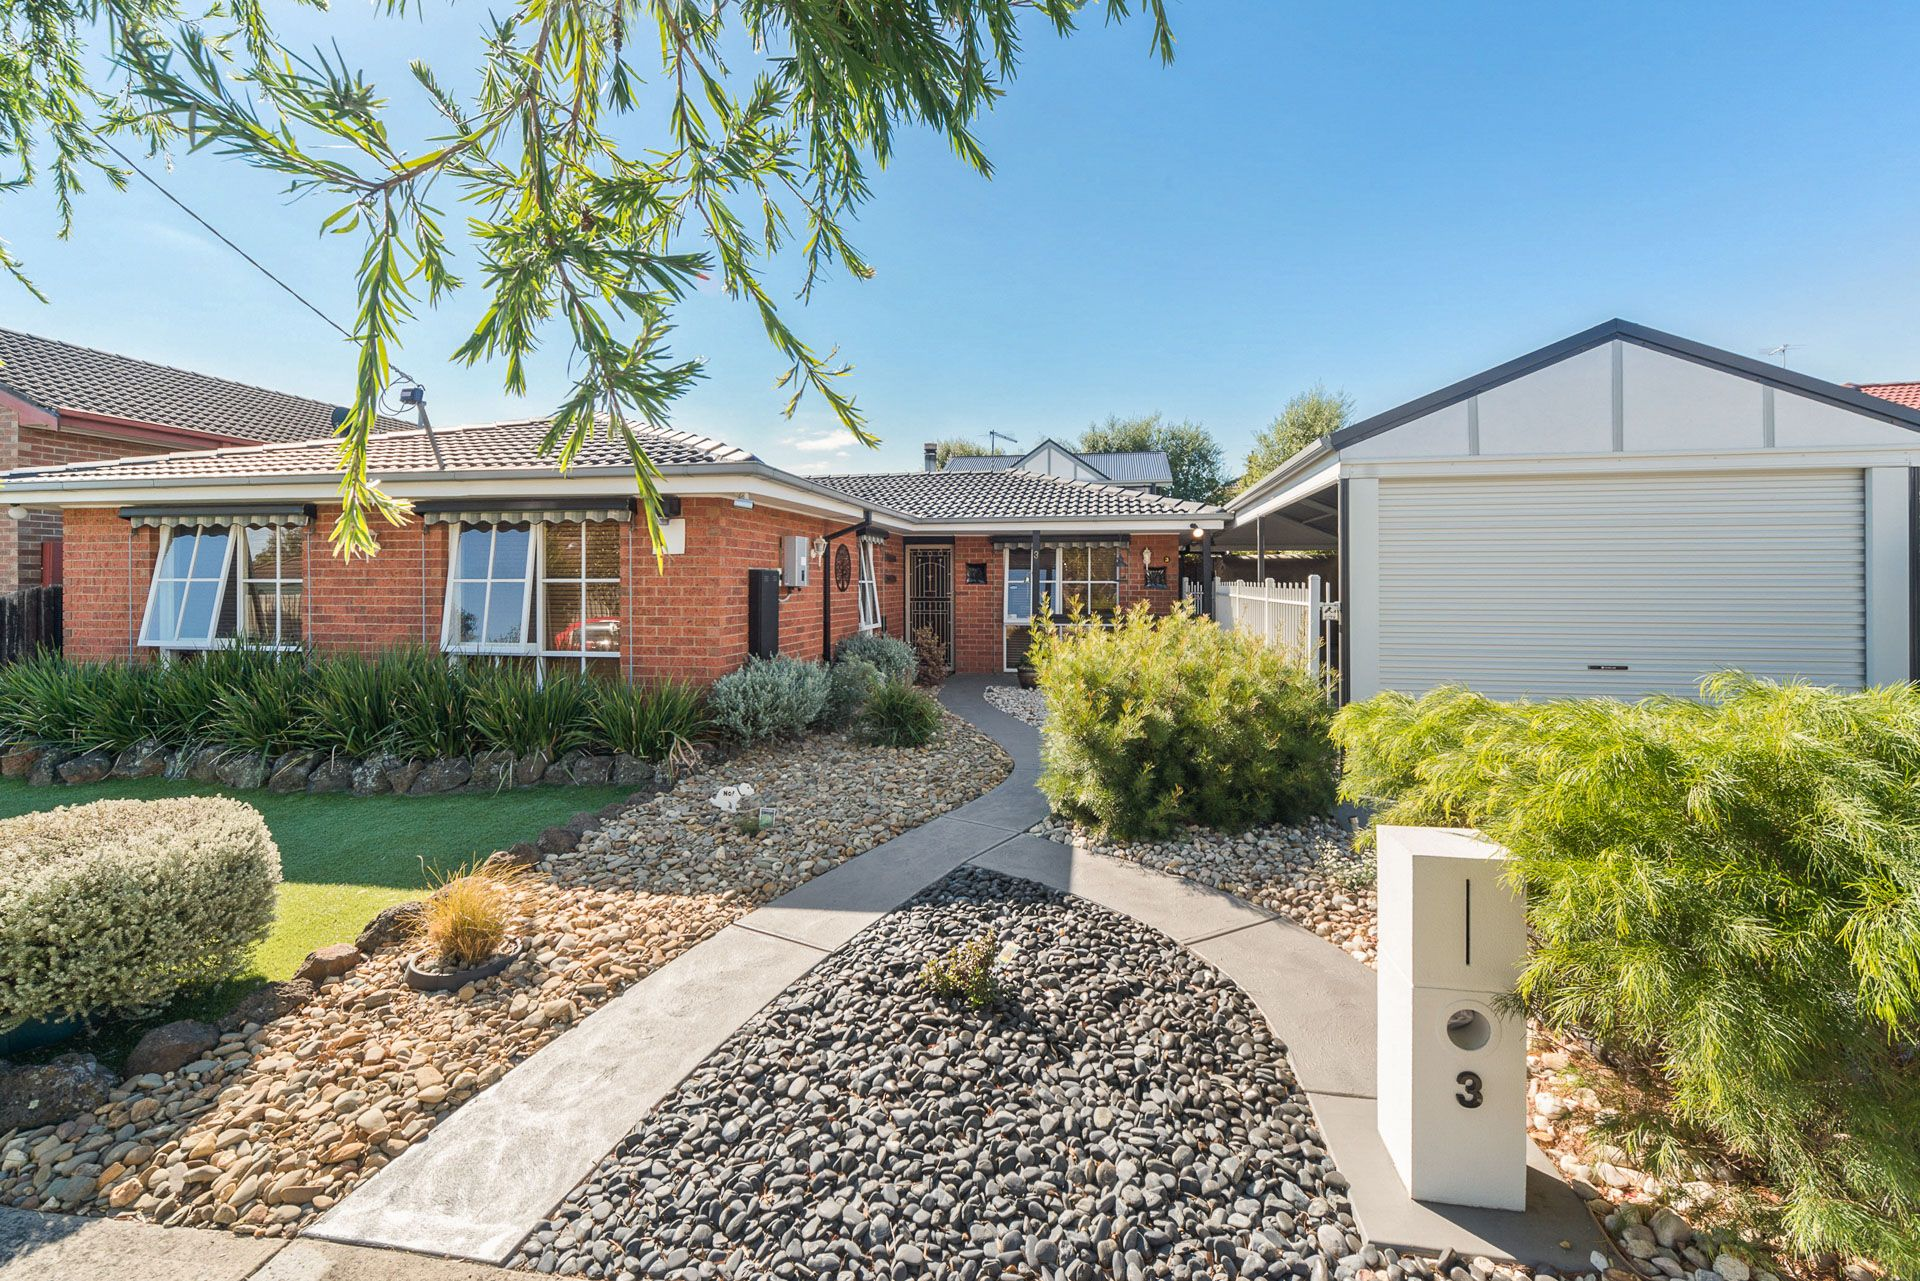 3 Allied Drive, CARRUM DOWNS, VIC, 3201 - Image